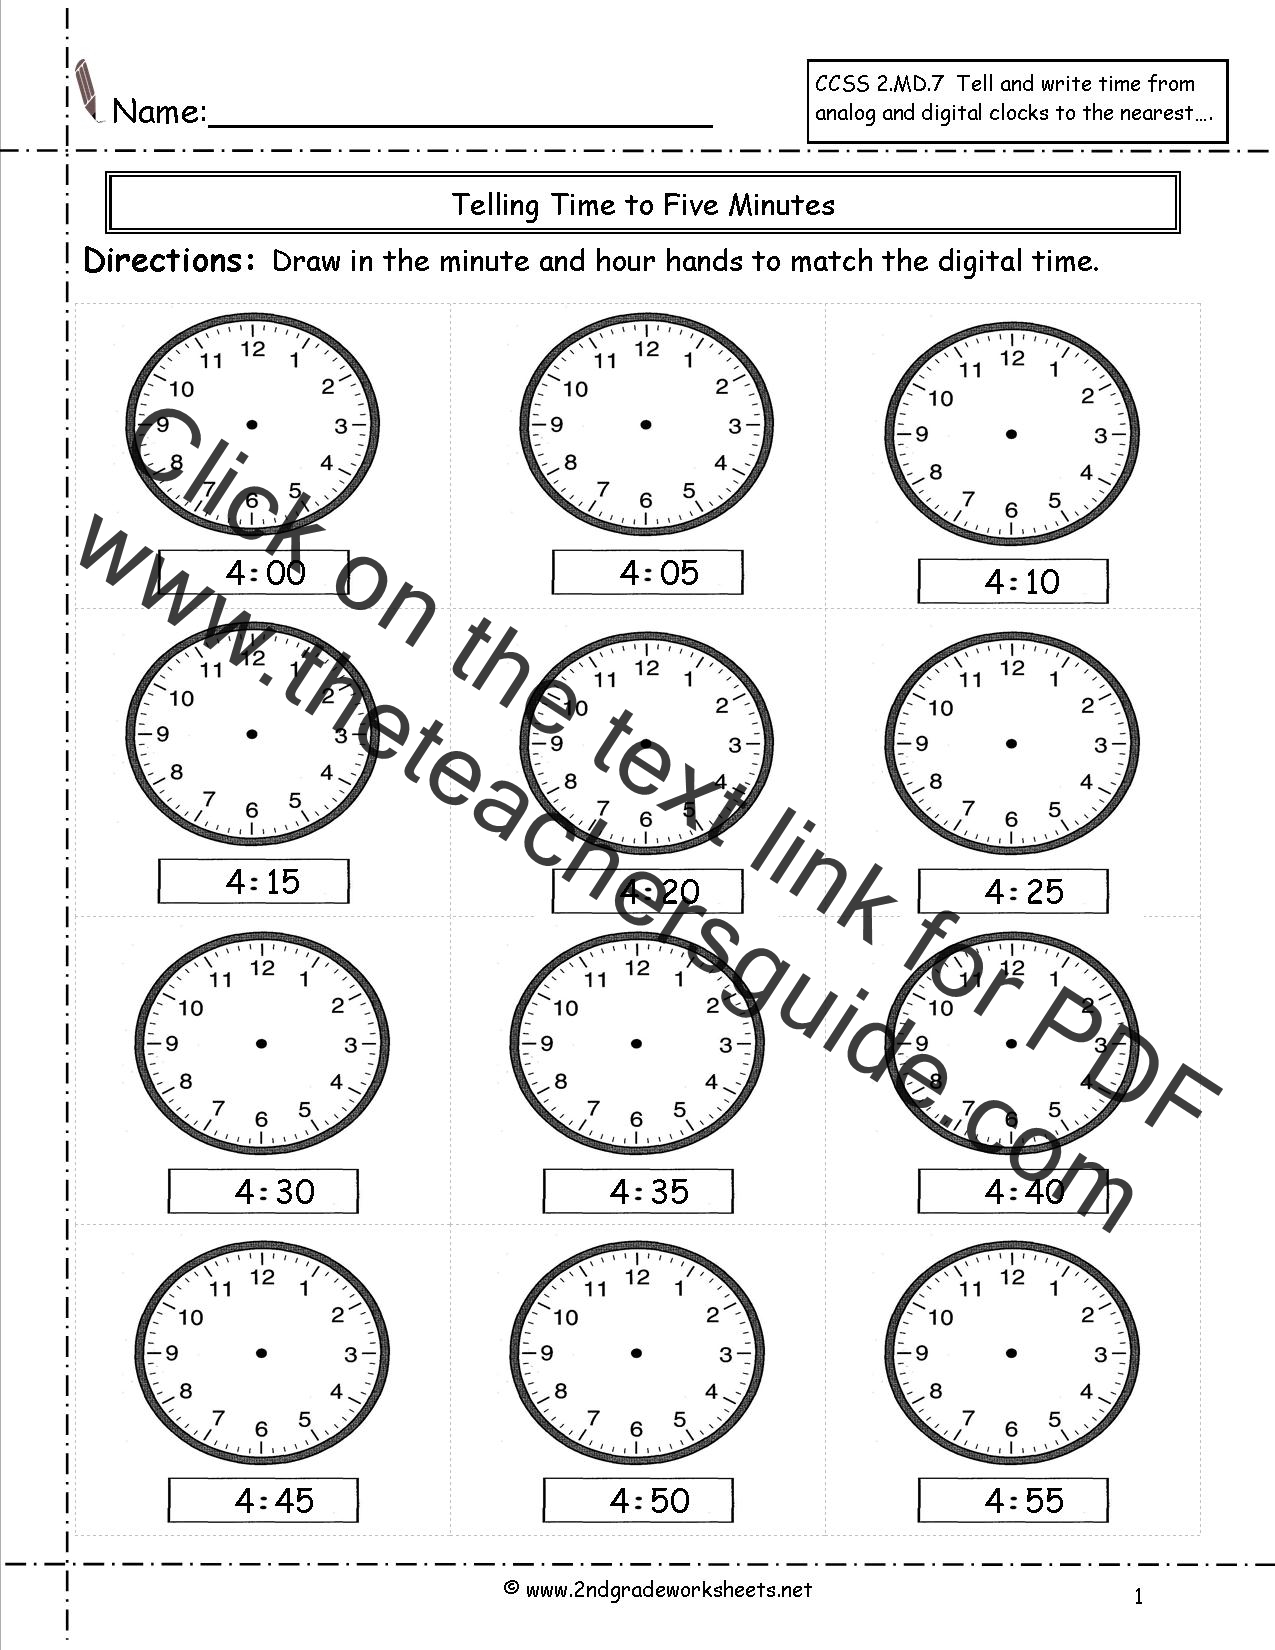 1st Grade Telling Time - Worksheets - free &- printable | K5 Learning